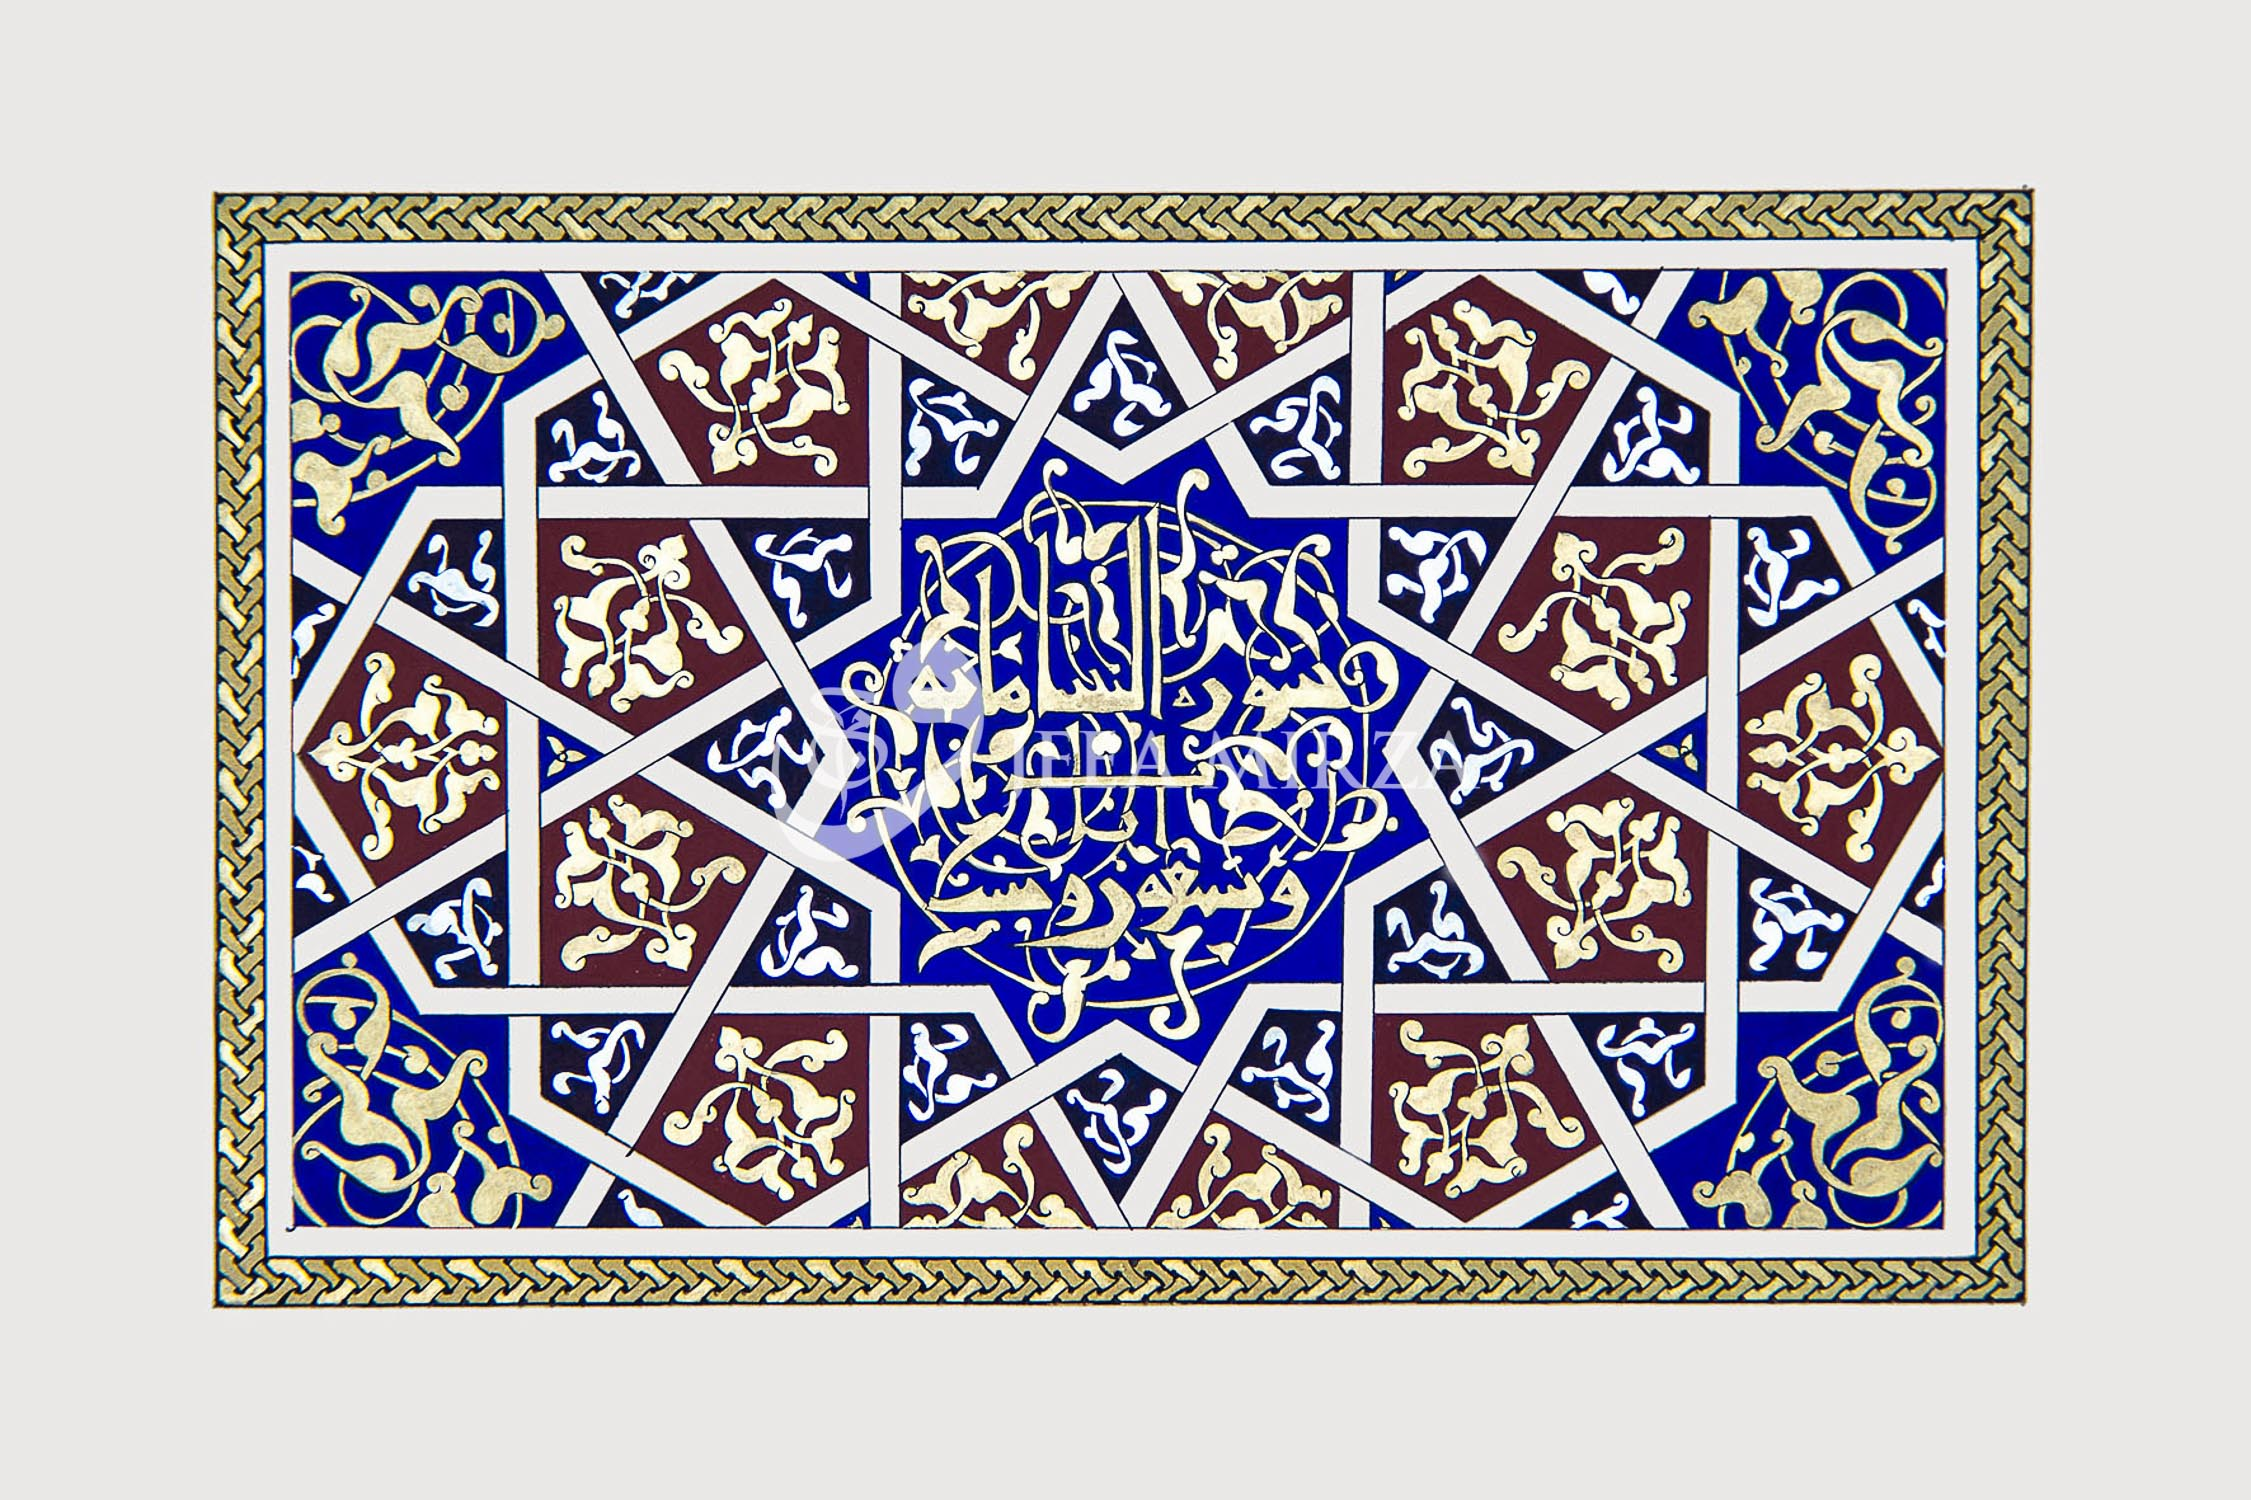 """© 2016 Wajeea Mirza. This is a reproduction of an illuminated surah heading from """"The Anonymous Baghdad Qur'an"""" - a Mamluk Qur'an which dates back to the 14th century. The Arabic calligraphy in the central star reads """"Surah al-Nisa - 176 ayas"""".   Materials : 2 different shades of 22 carat shell gold, 12 carat (white) shell gold and hand ground pigments on tea stained watercolour paper.     Prints available in the online store here"""